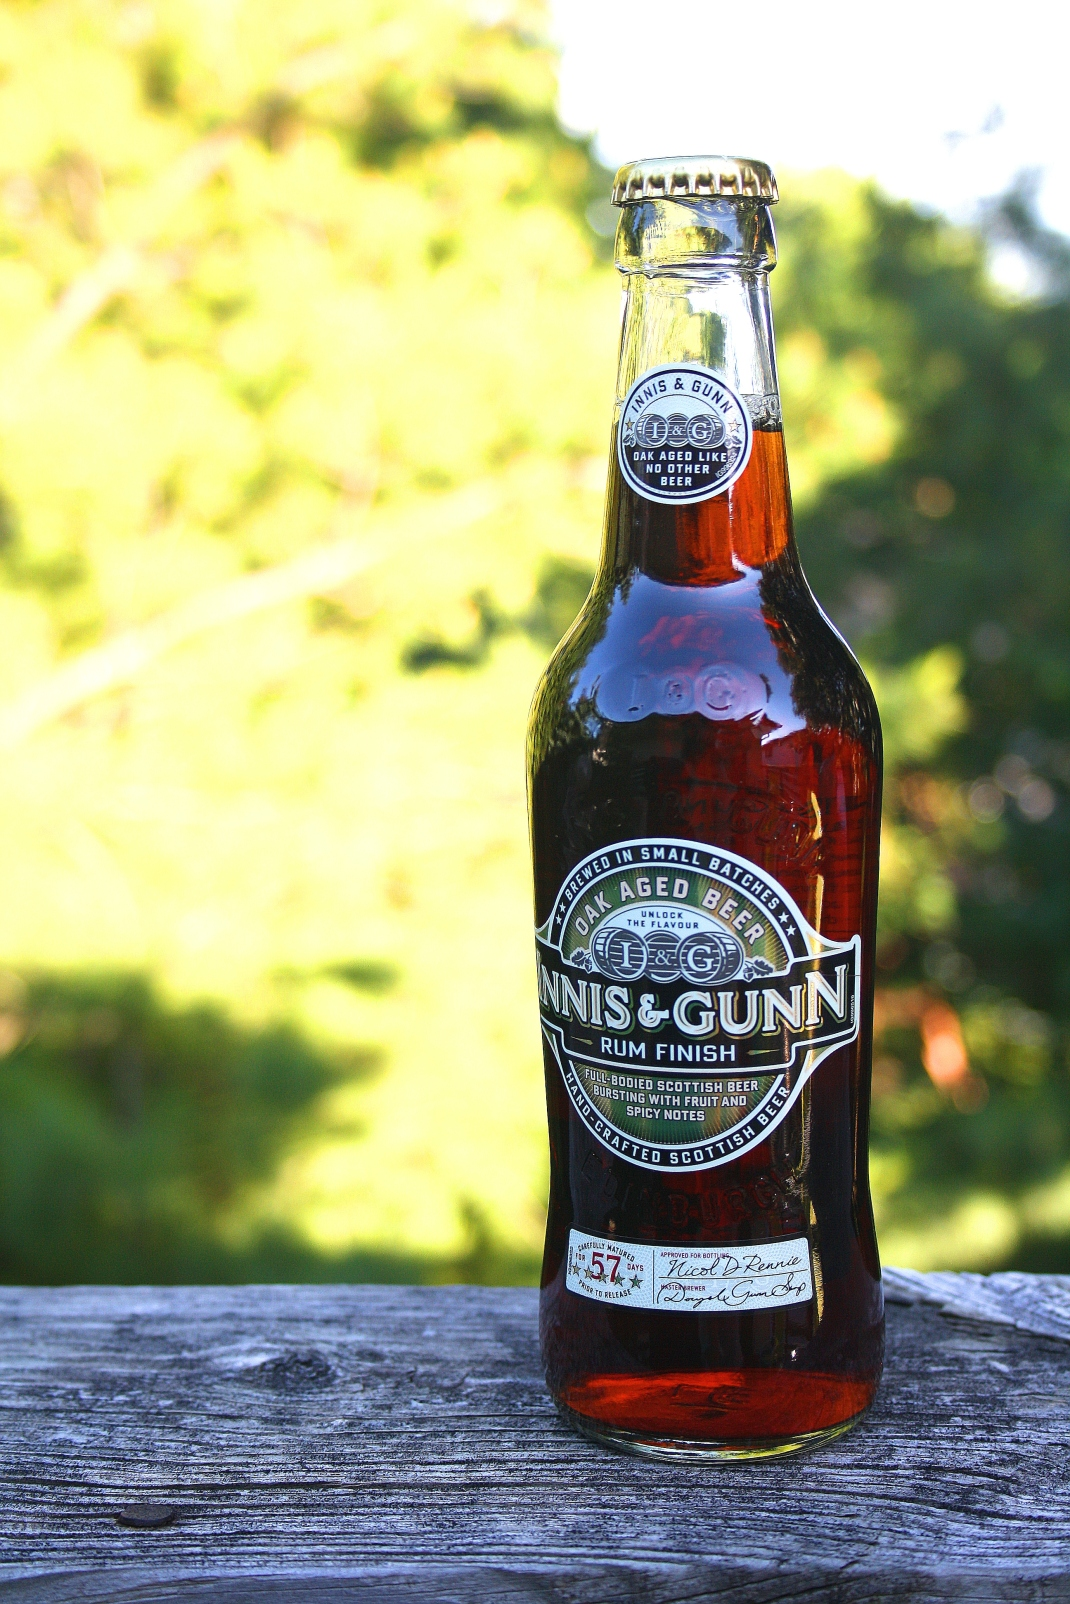 Innis and Gunn, one of my favourite brews - always nice on the deck after a long day at work.